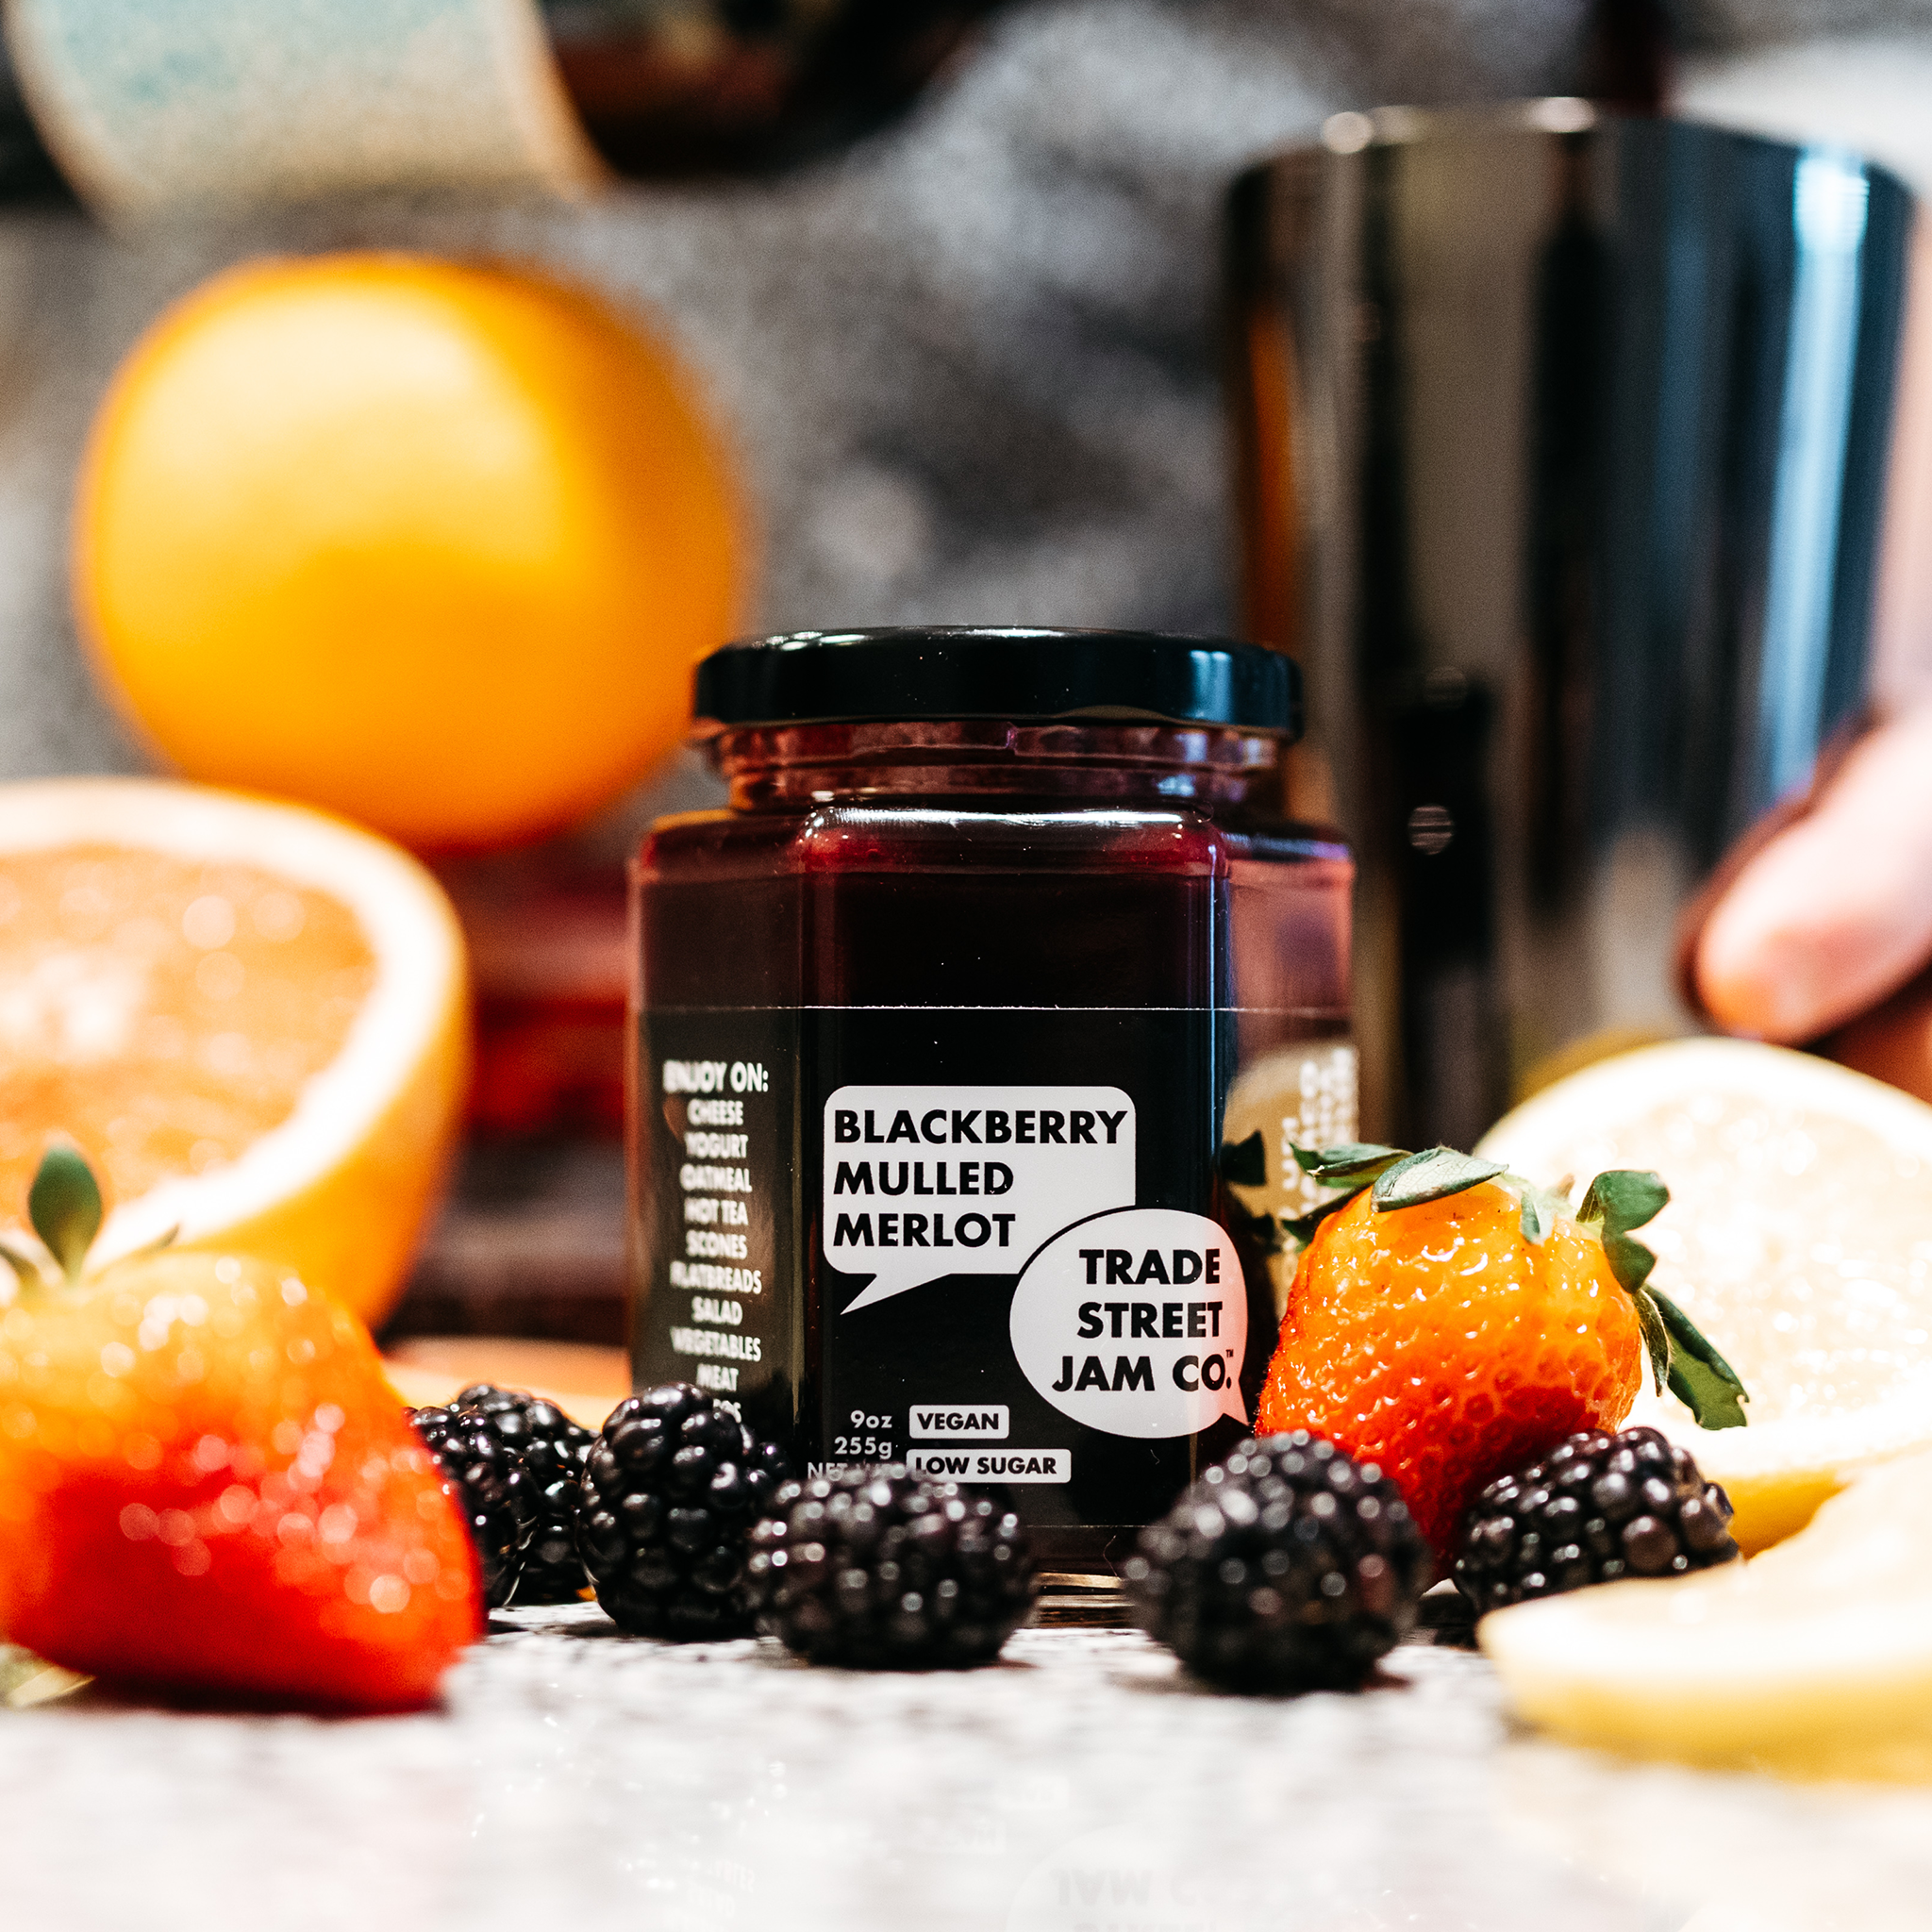 jam, jelly, mulled merlot, blackberry, low sugar, vegan